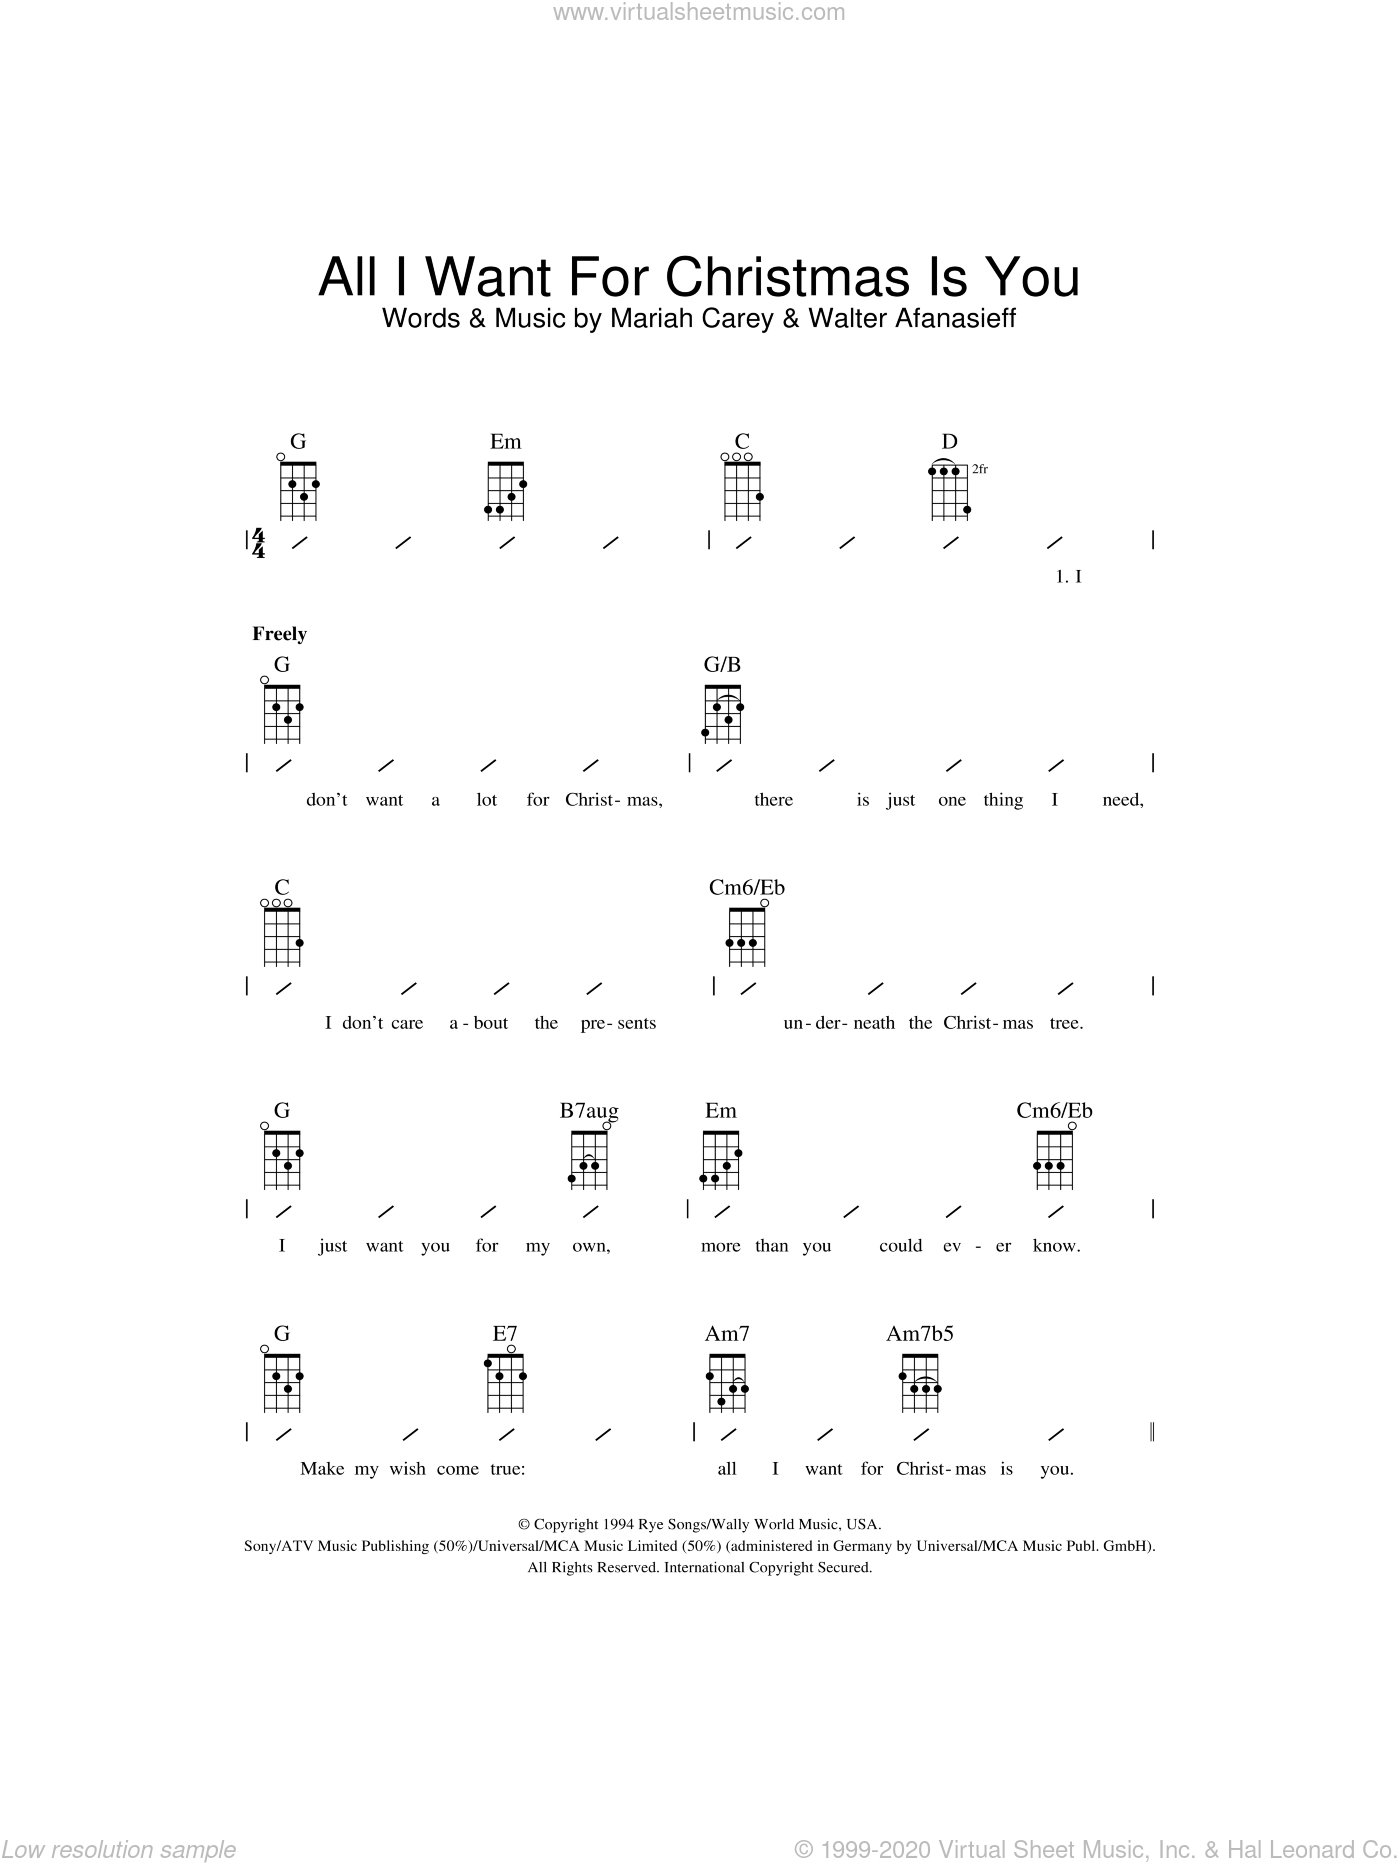 All I Want For Christmas Is You sheet music for ukulele (chords) by Walter Afanasieff